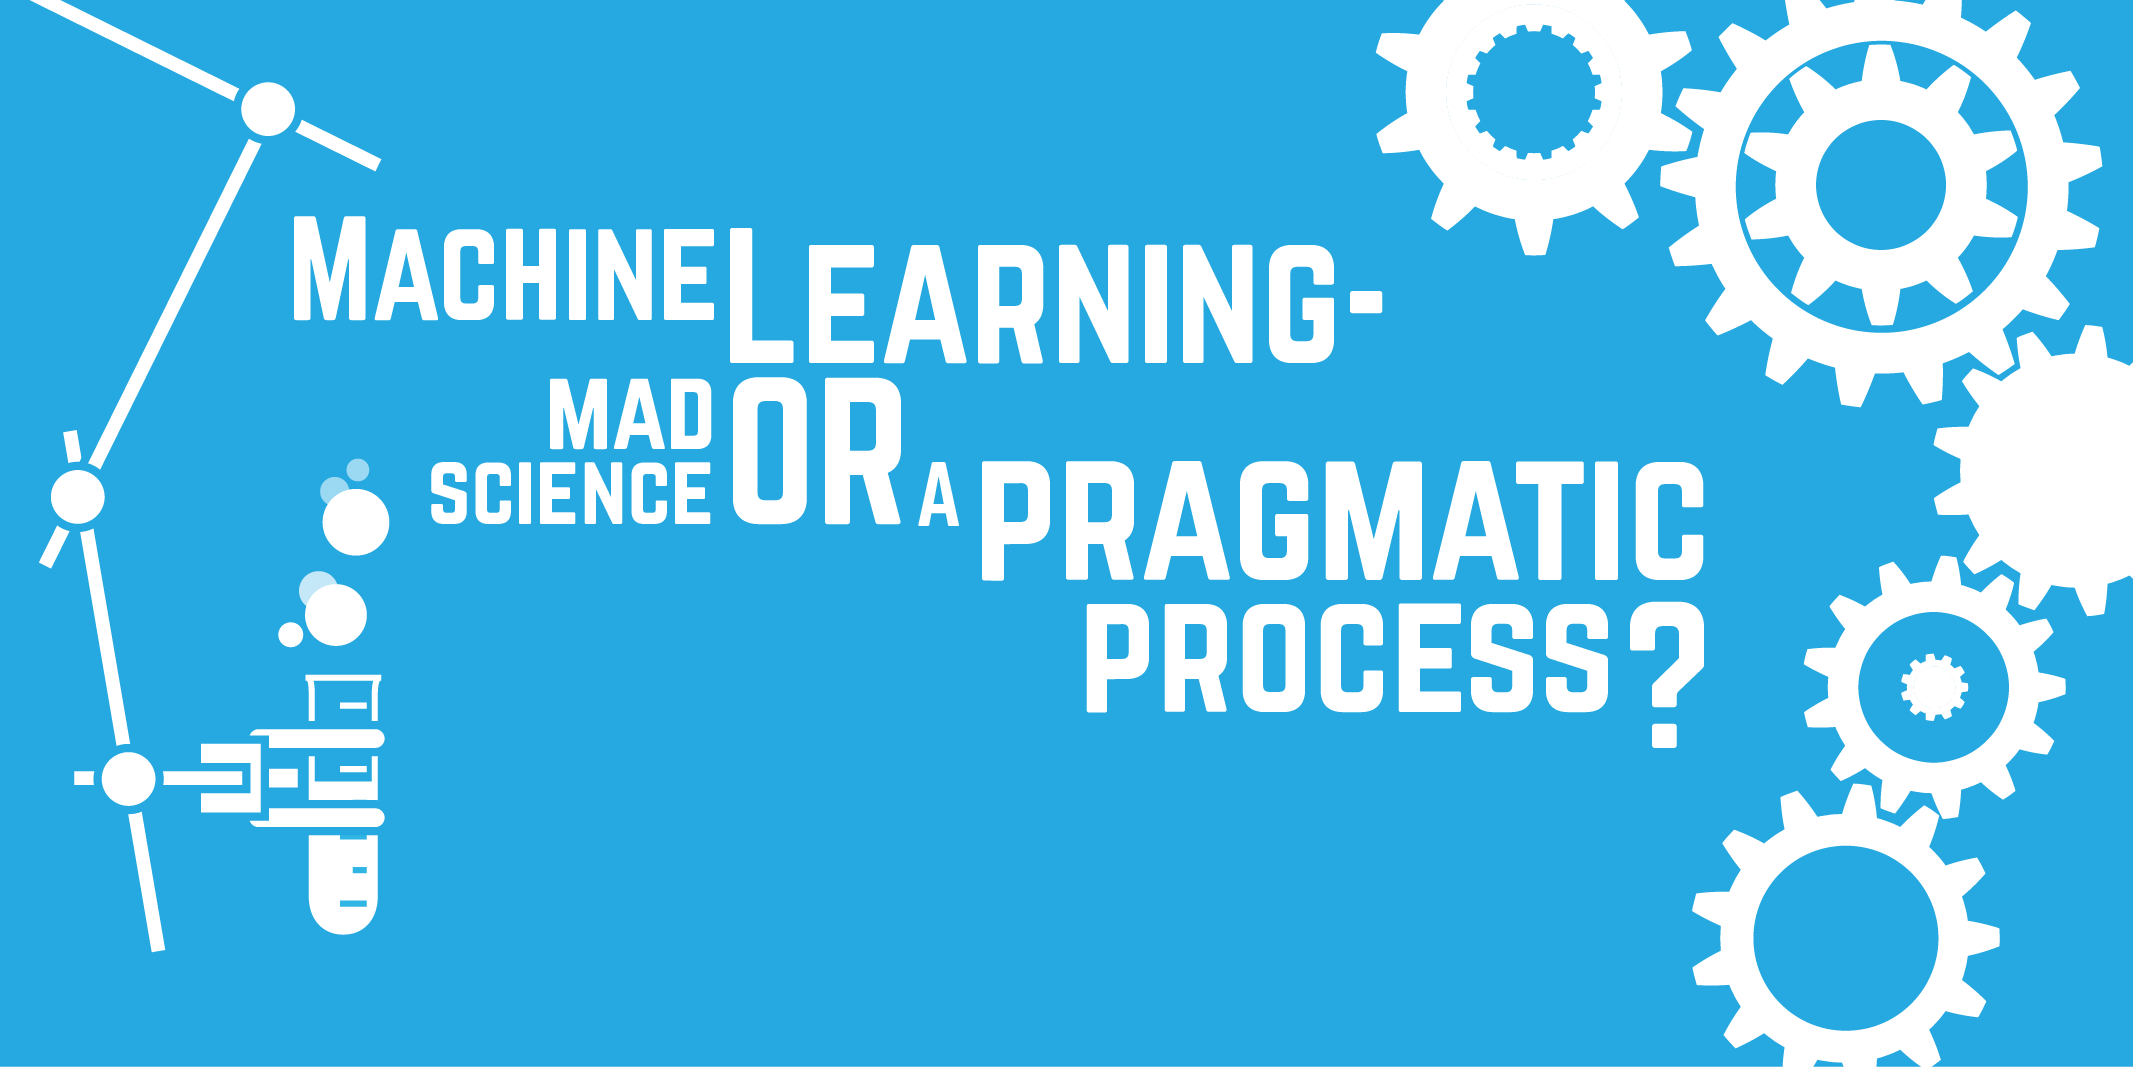 Machine Learning - mad science or a pragmatic process?